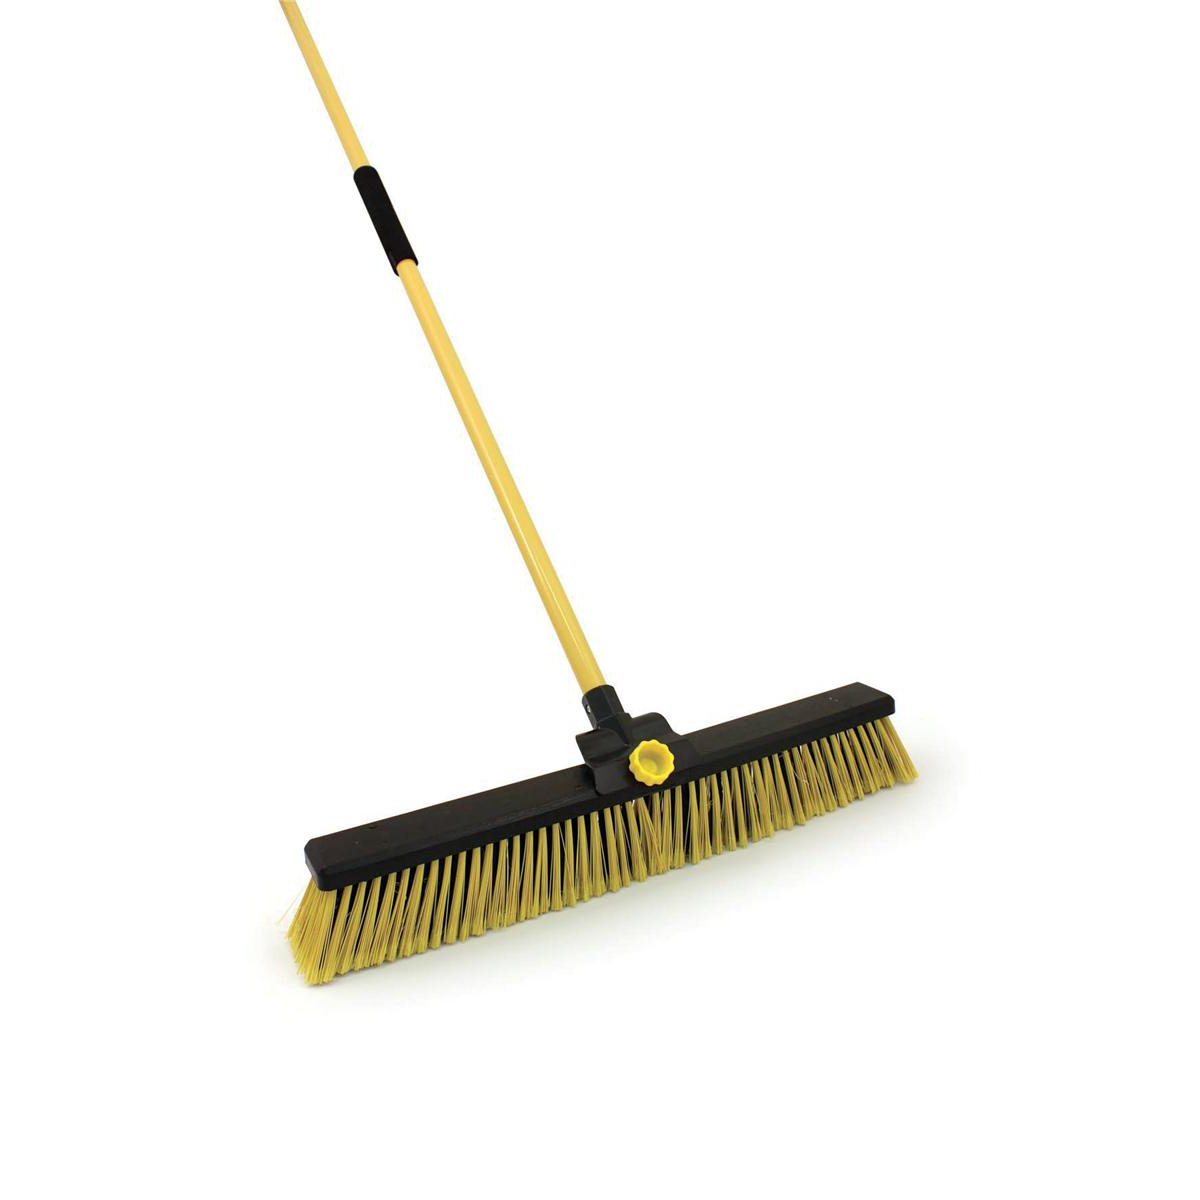 Broom Bulldozer Dual Purpose Soft/Stiff PVC Yard Broom & Metal Handle 24inch